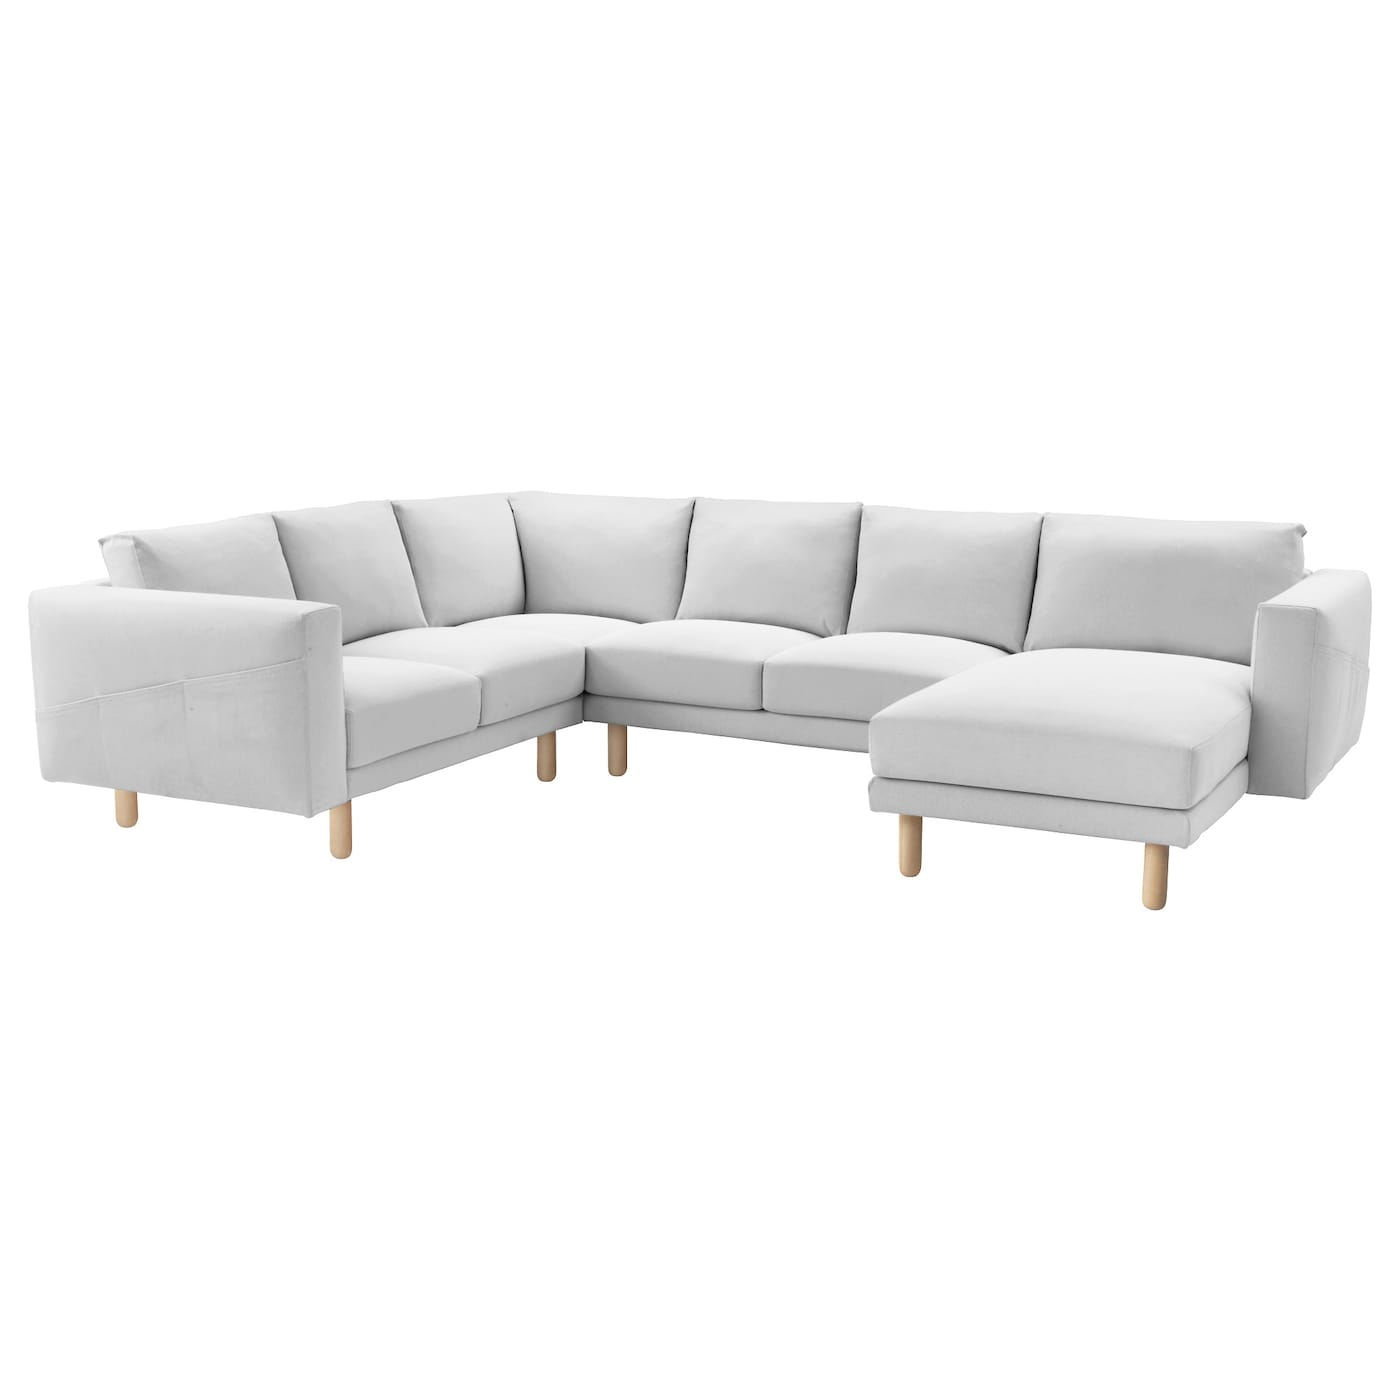 Ecksofa ikea grau  Free try out of NeoWall Sofa from Living Divani in 3D, VR and AR